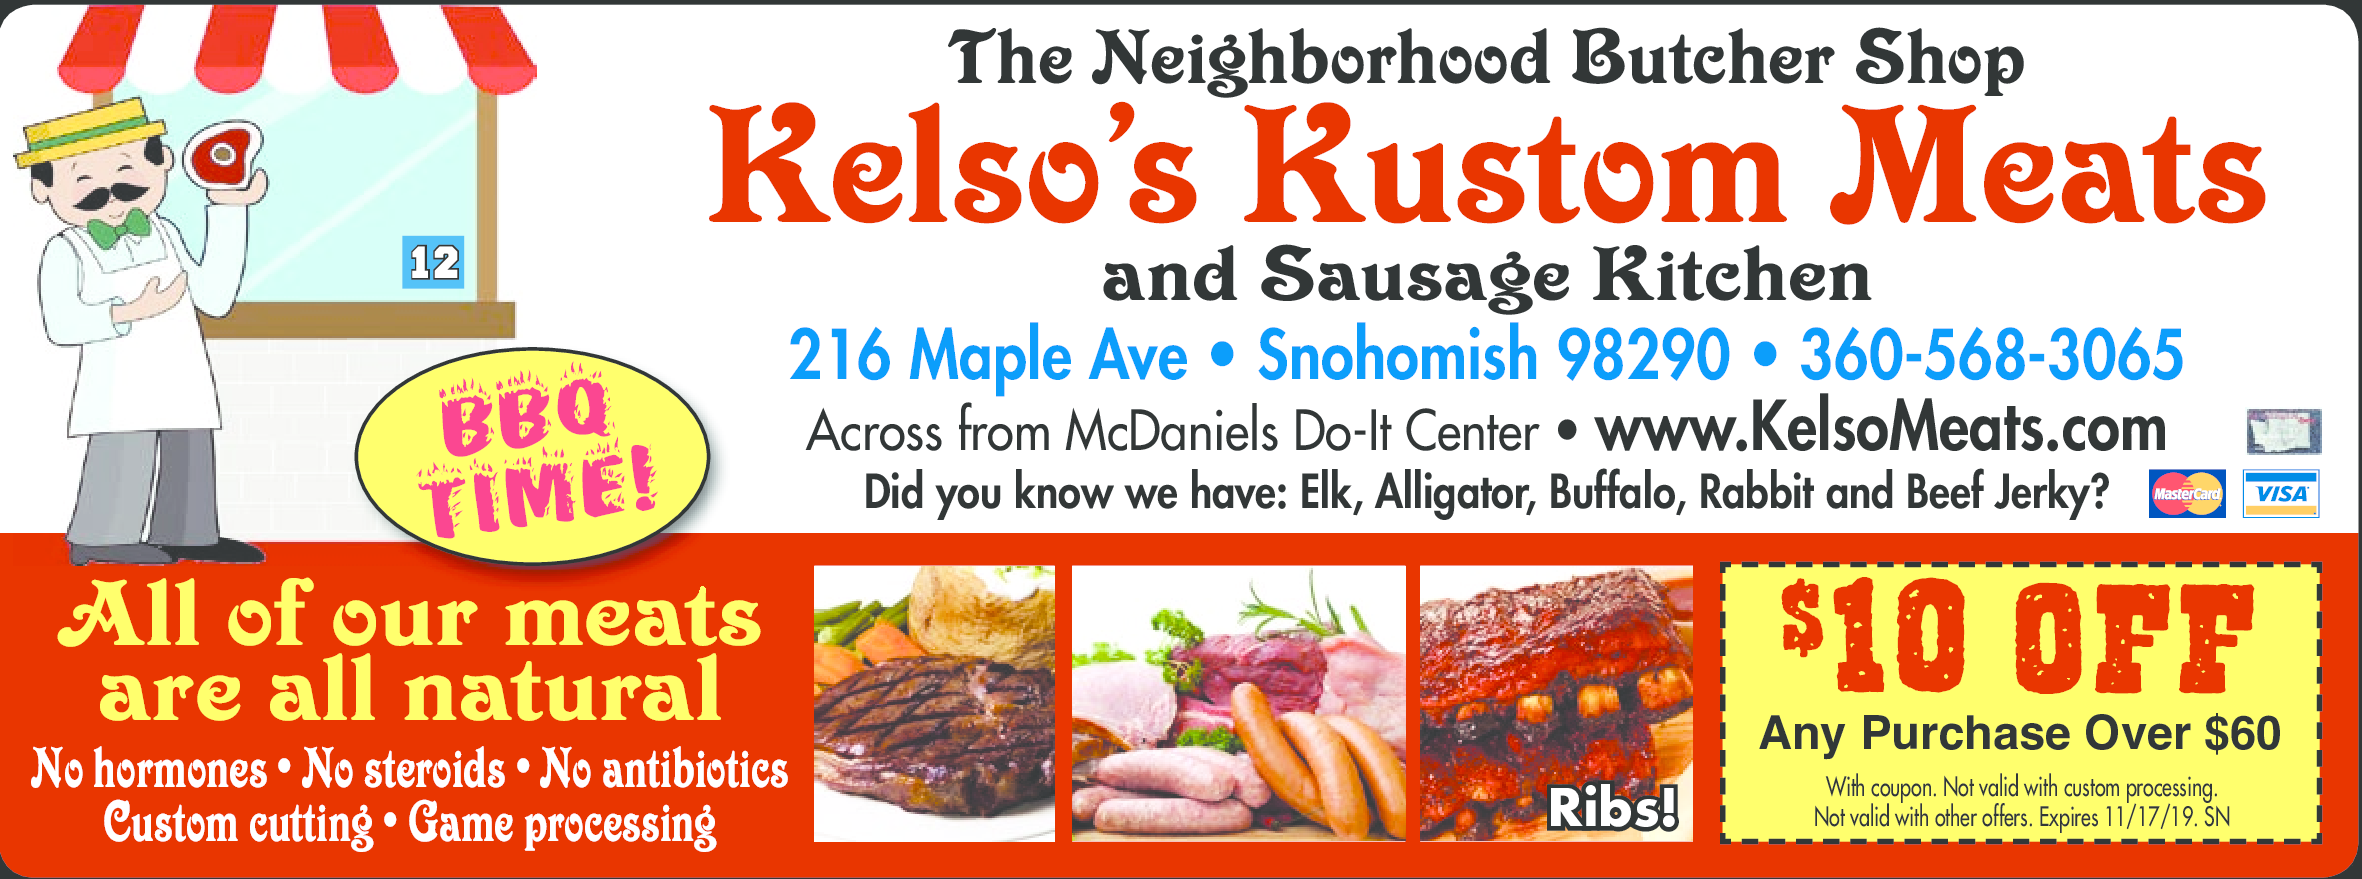 Kelso's Kustom Meats Coupons